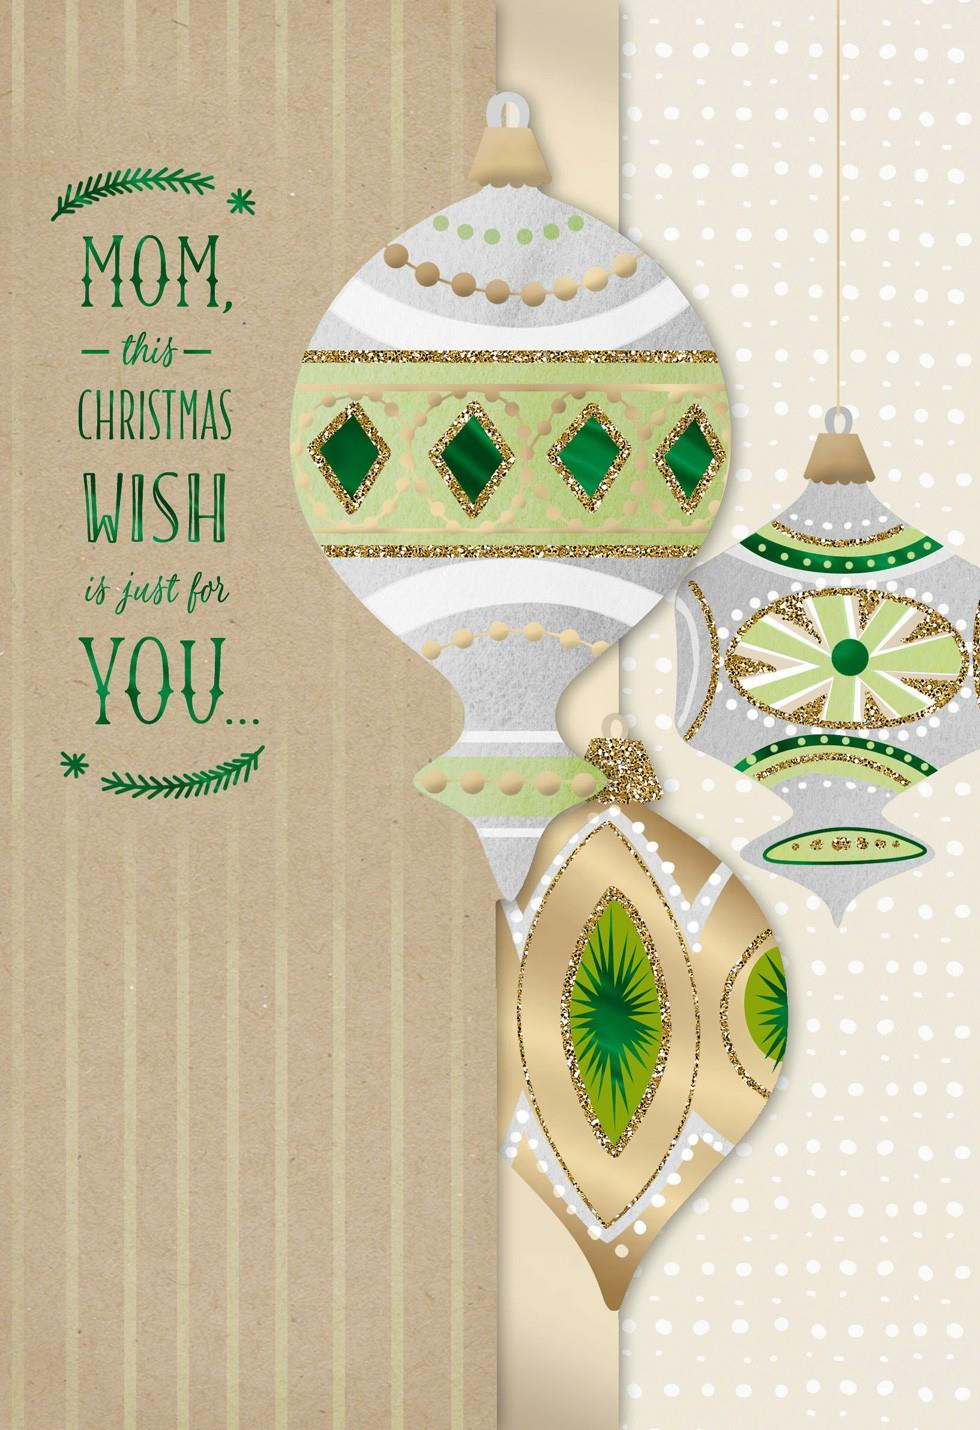 Wishes for Mom Christmas Card - Greeting Cards - Hallmark